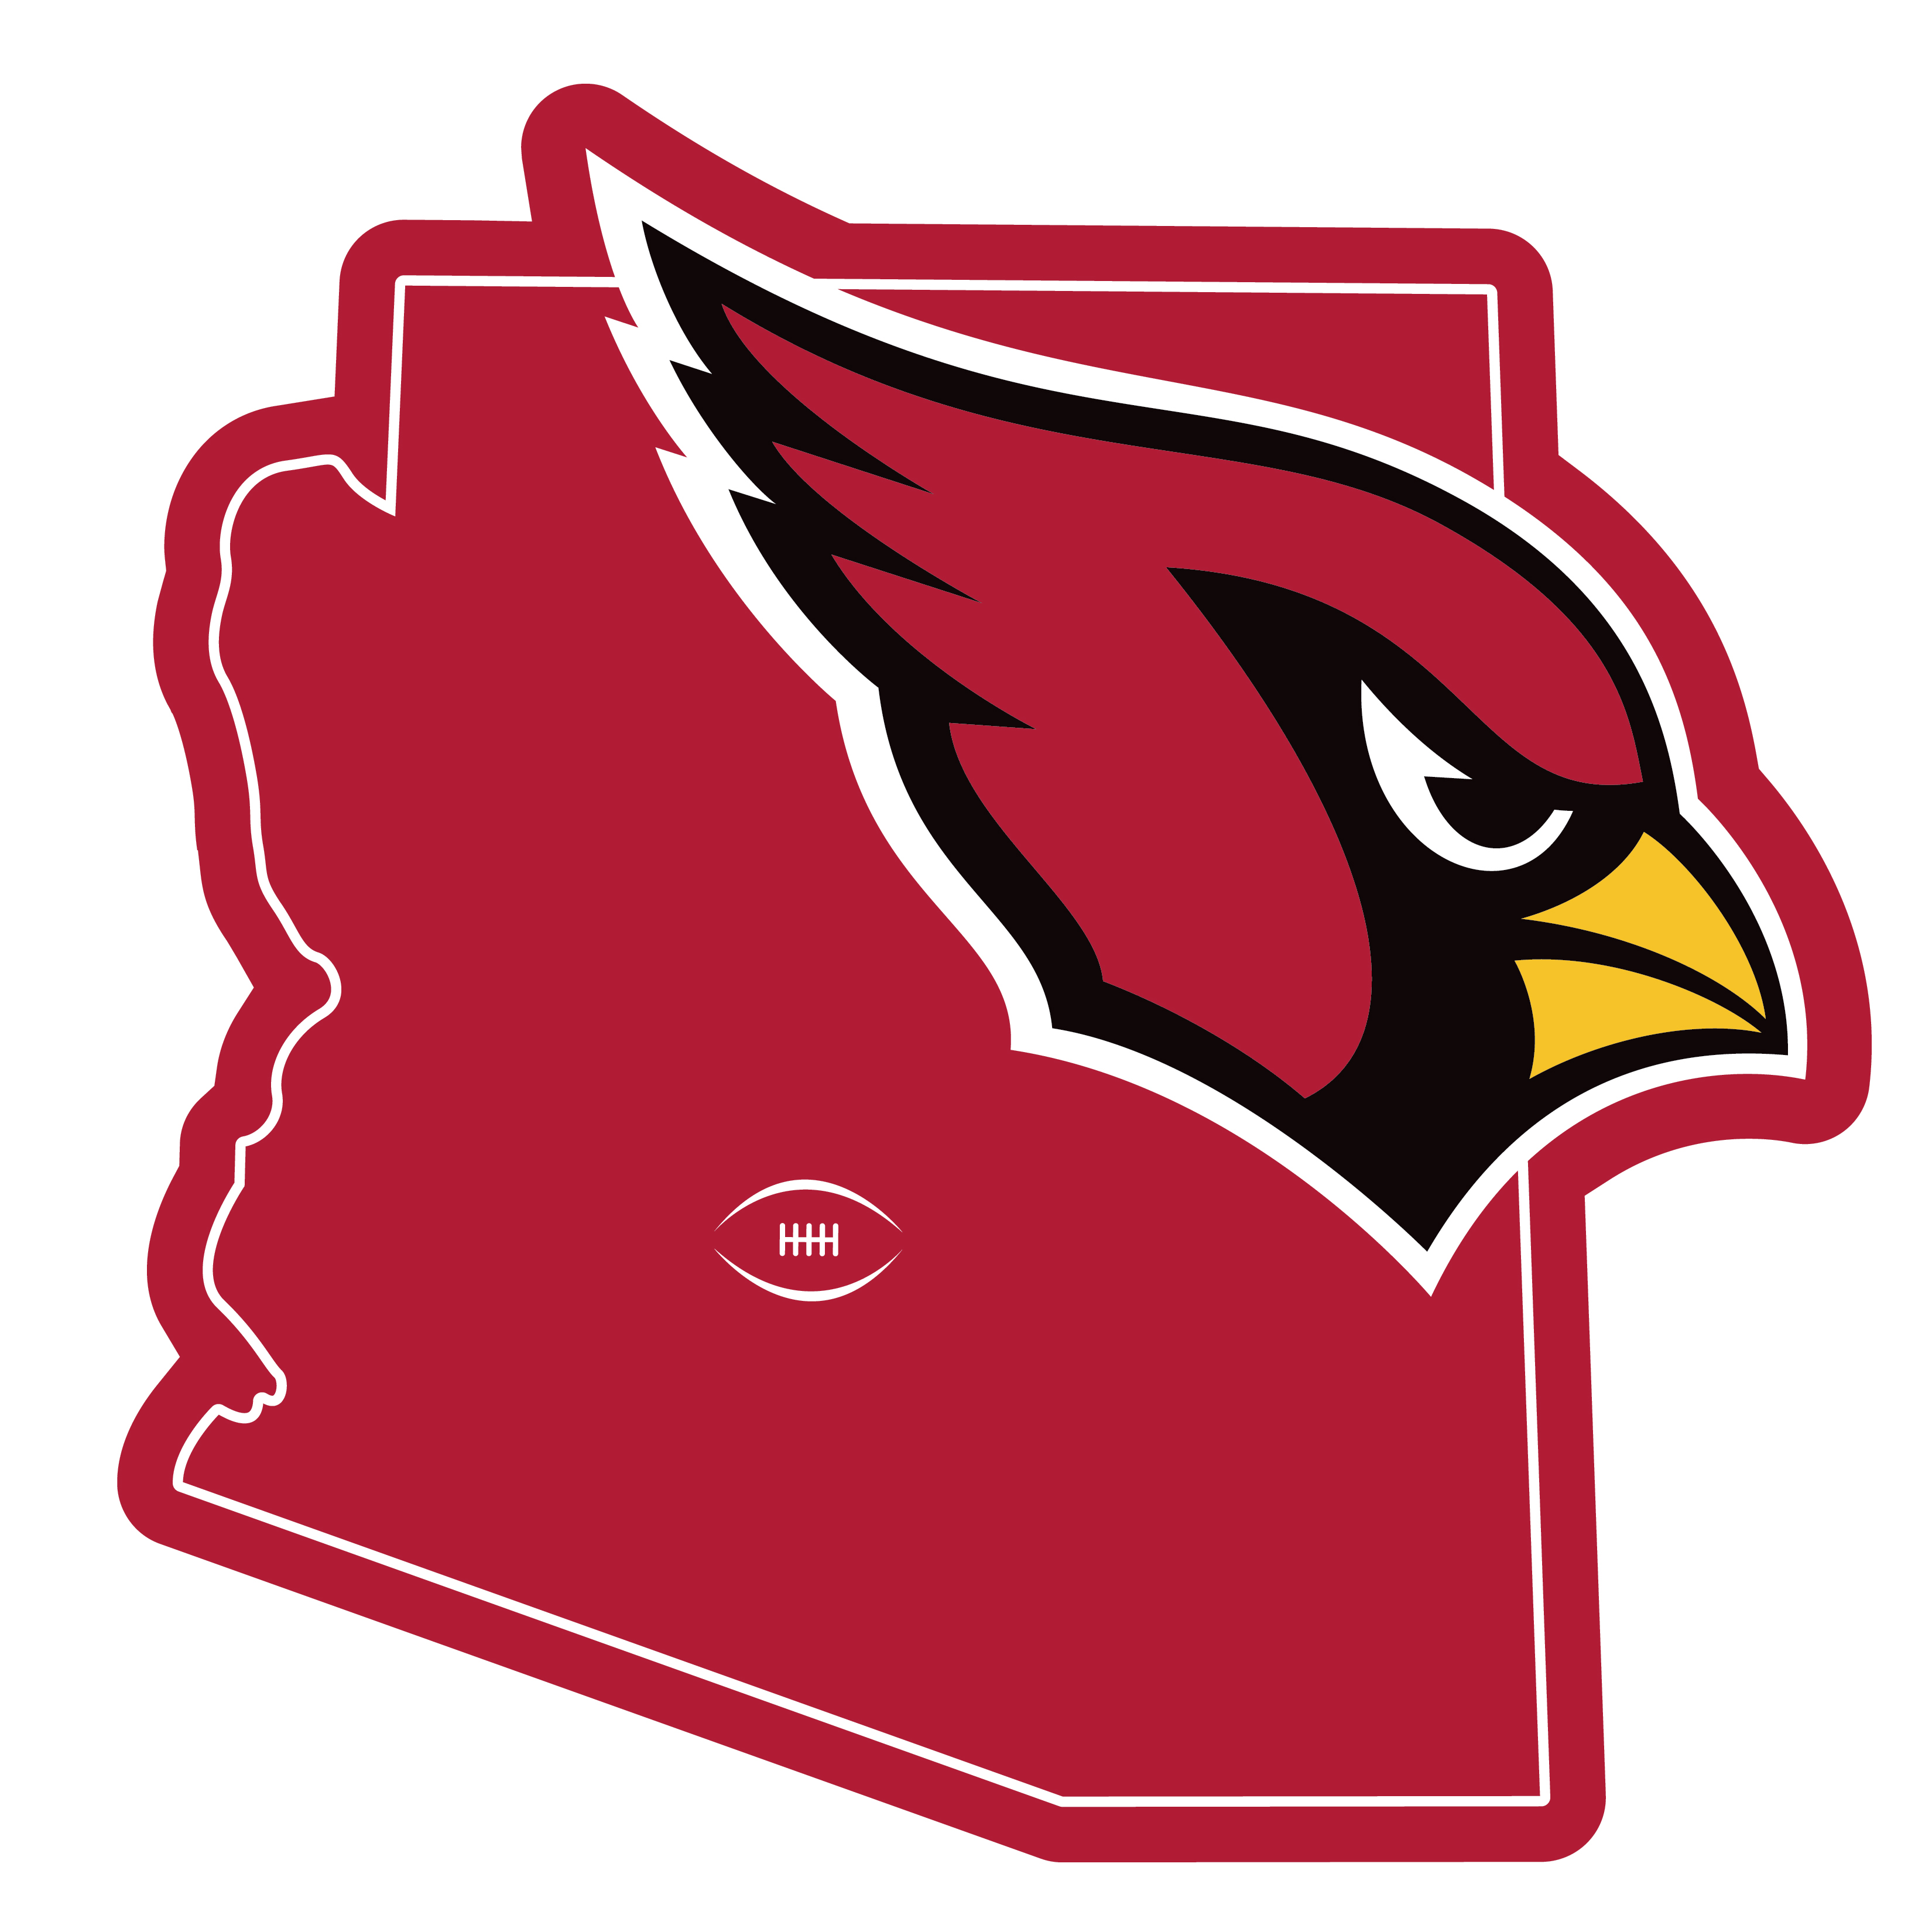 Arizona Cardinals Home State 11 Inch Magnet - Whether you are caravaning to the game or having a tailgate party make sure you car is wearing its fan gear with our extra large, 11 inch Arizona Cardinals home state magnets. These striking magnets can be easily placed on for game day and removed without he residue left by decals. The design features a bright state outline with the location of the team highlighted with a football and a large team logo.